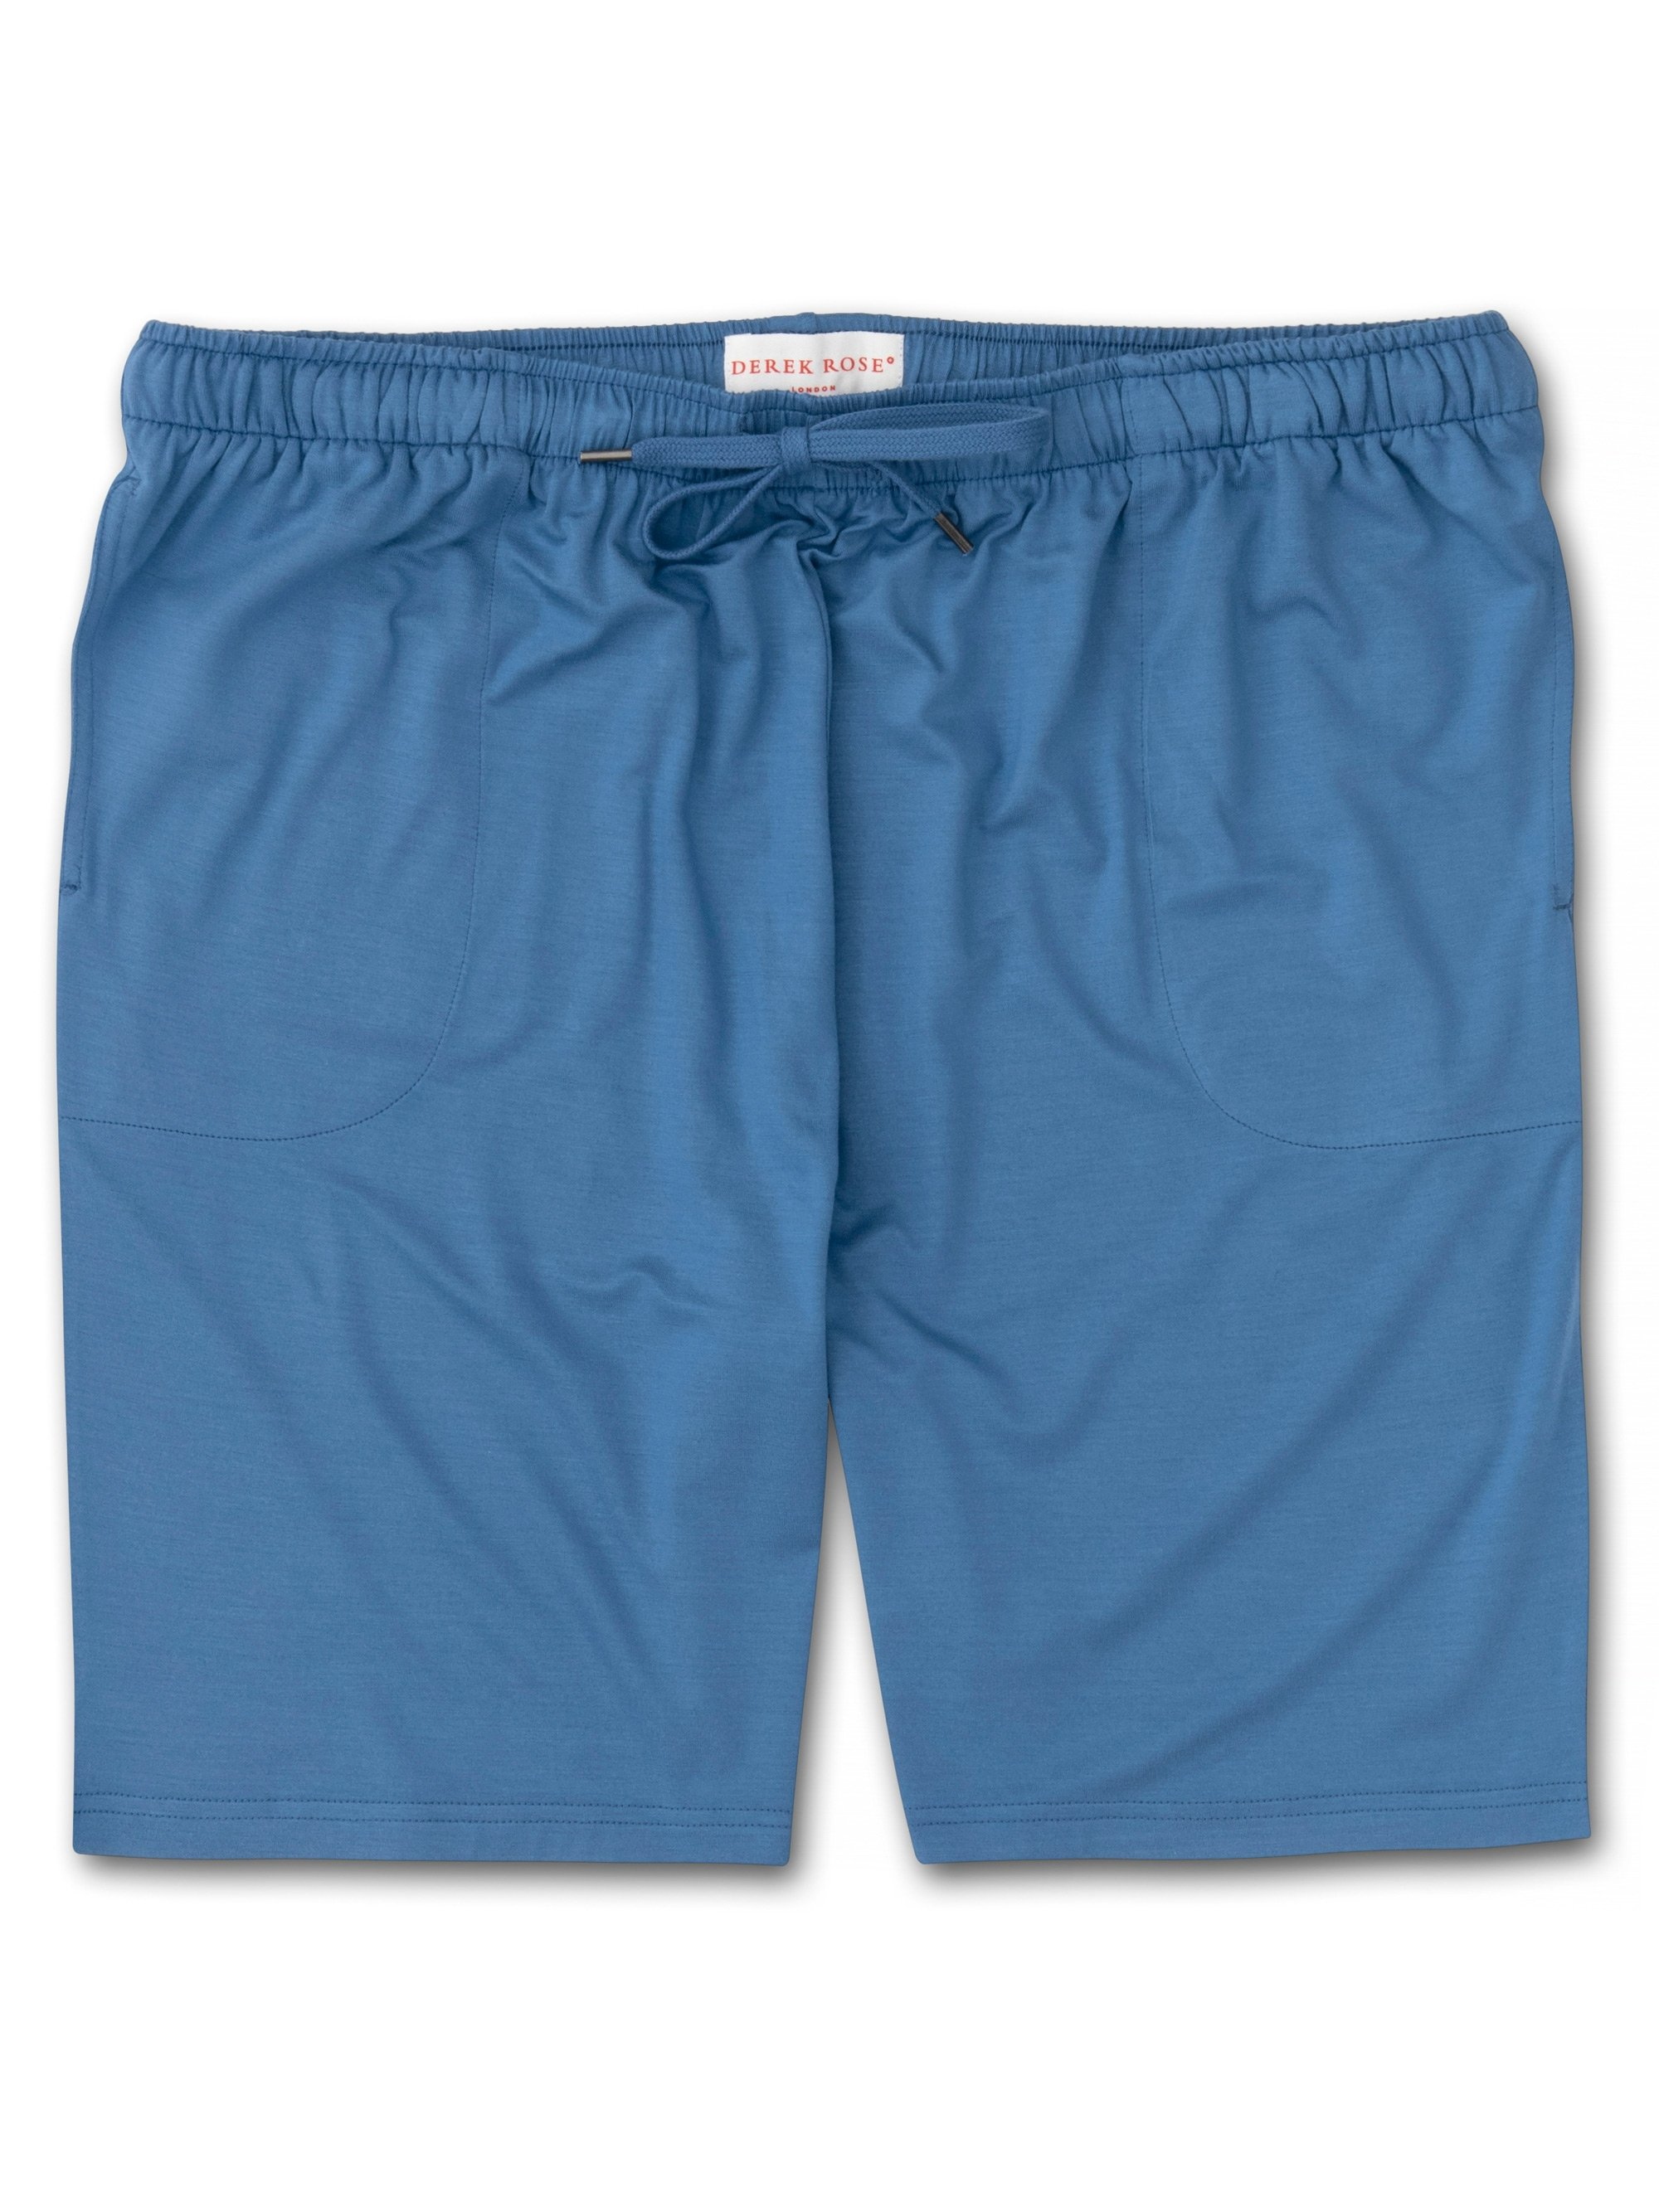 Men's Jersey Shorts Basel 9 Micro Modal Stretch Blue